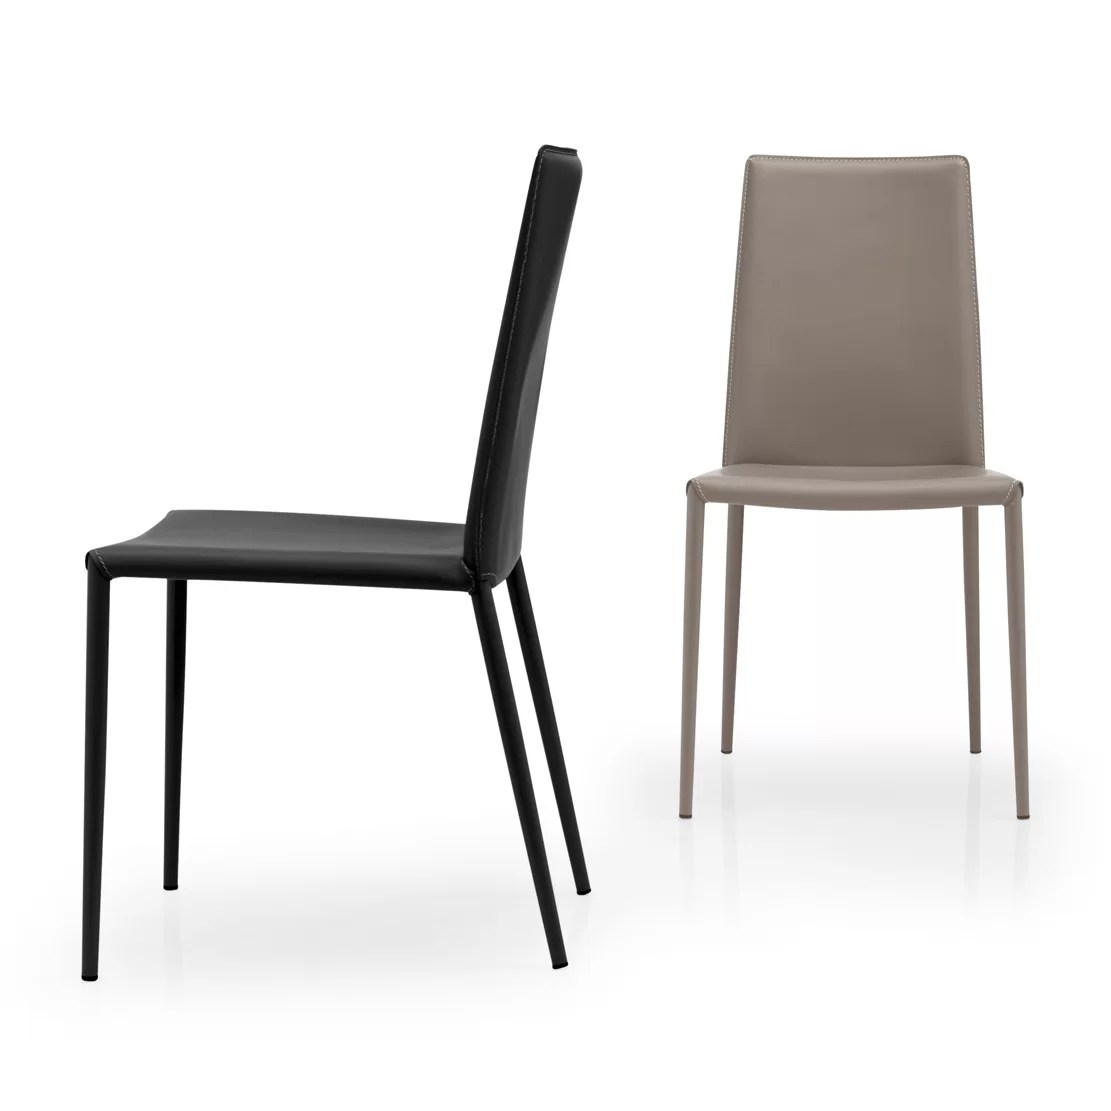 Sedia Calligaris Aida Soft Calligaris Chaise Bess Side Chair By Calligaris Claire Dining